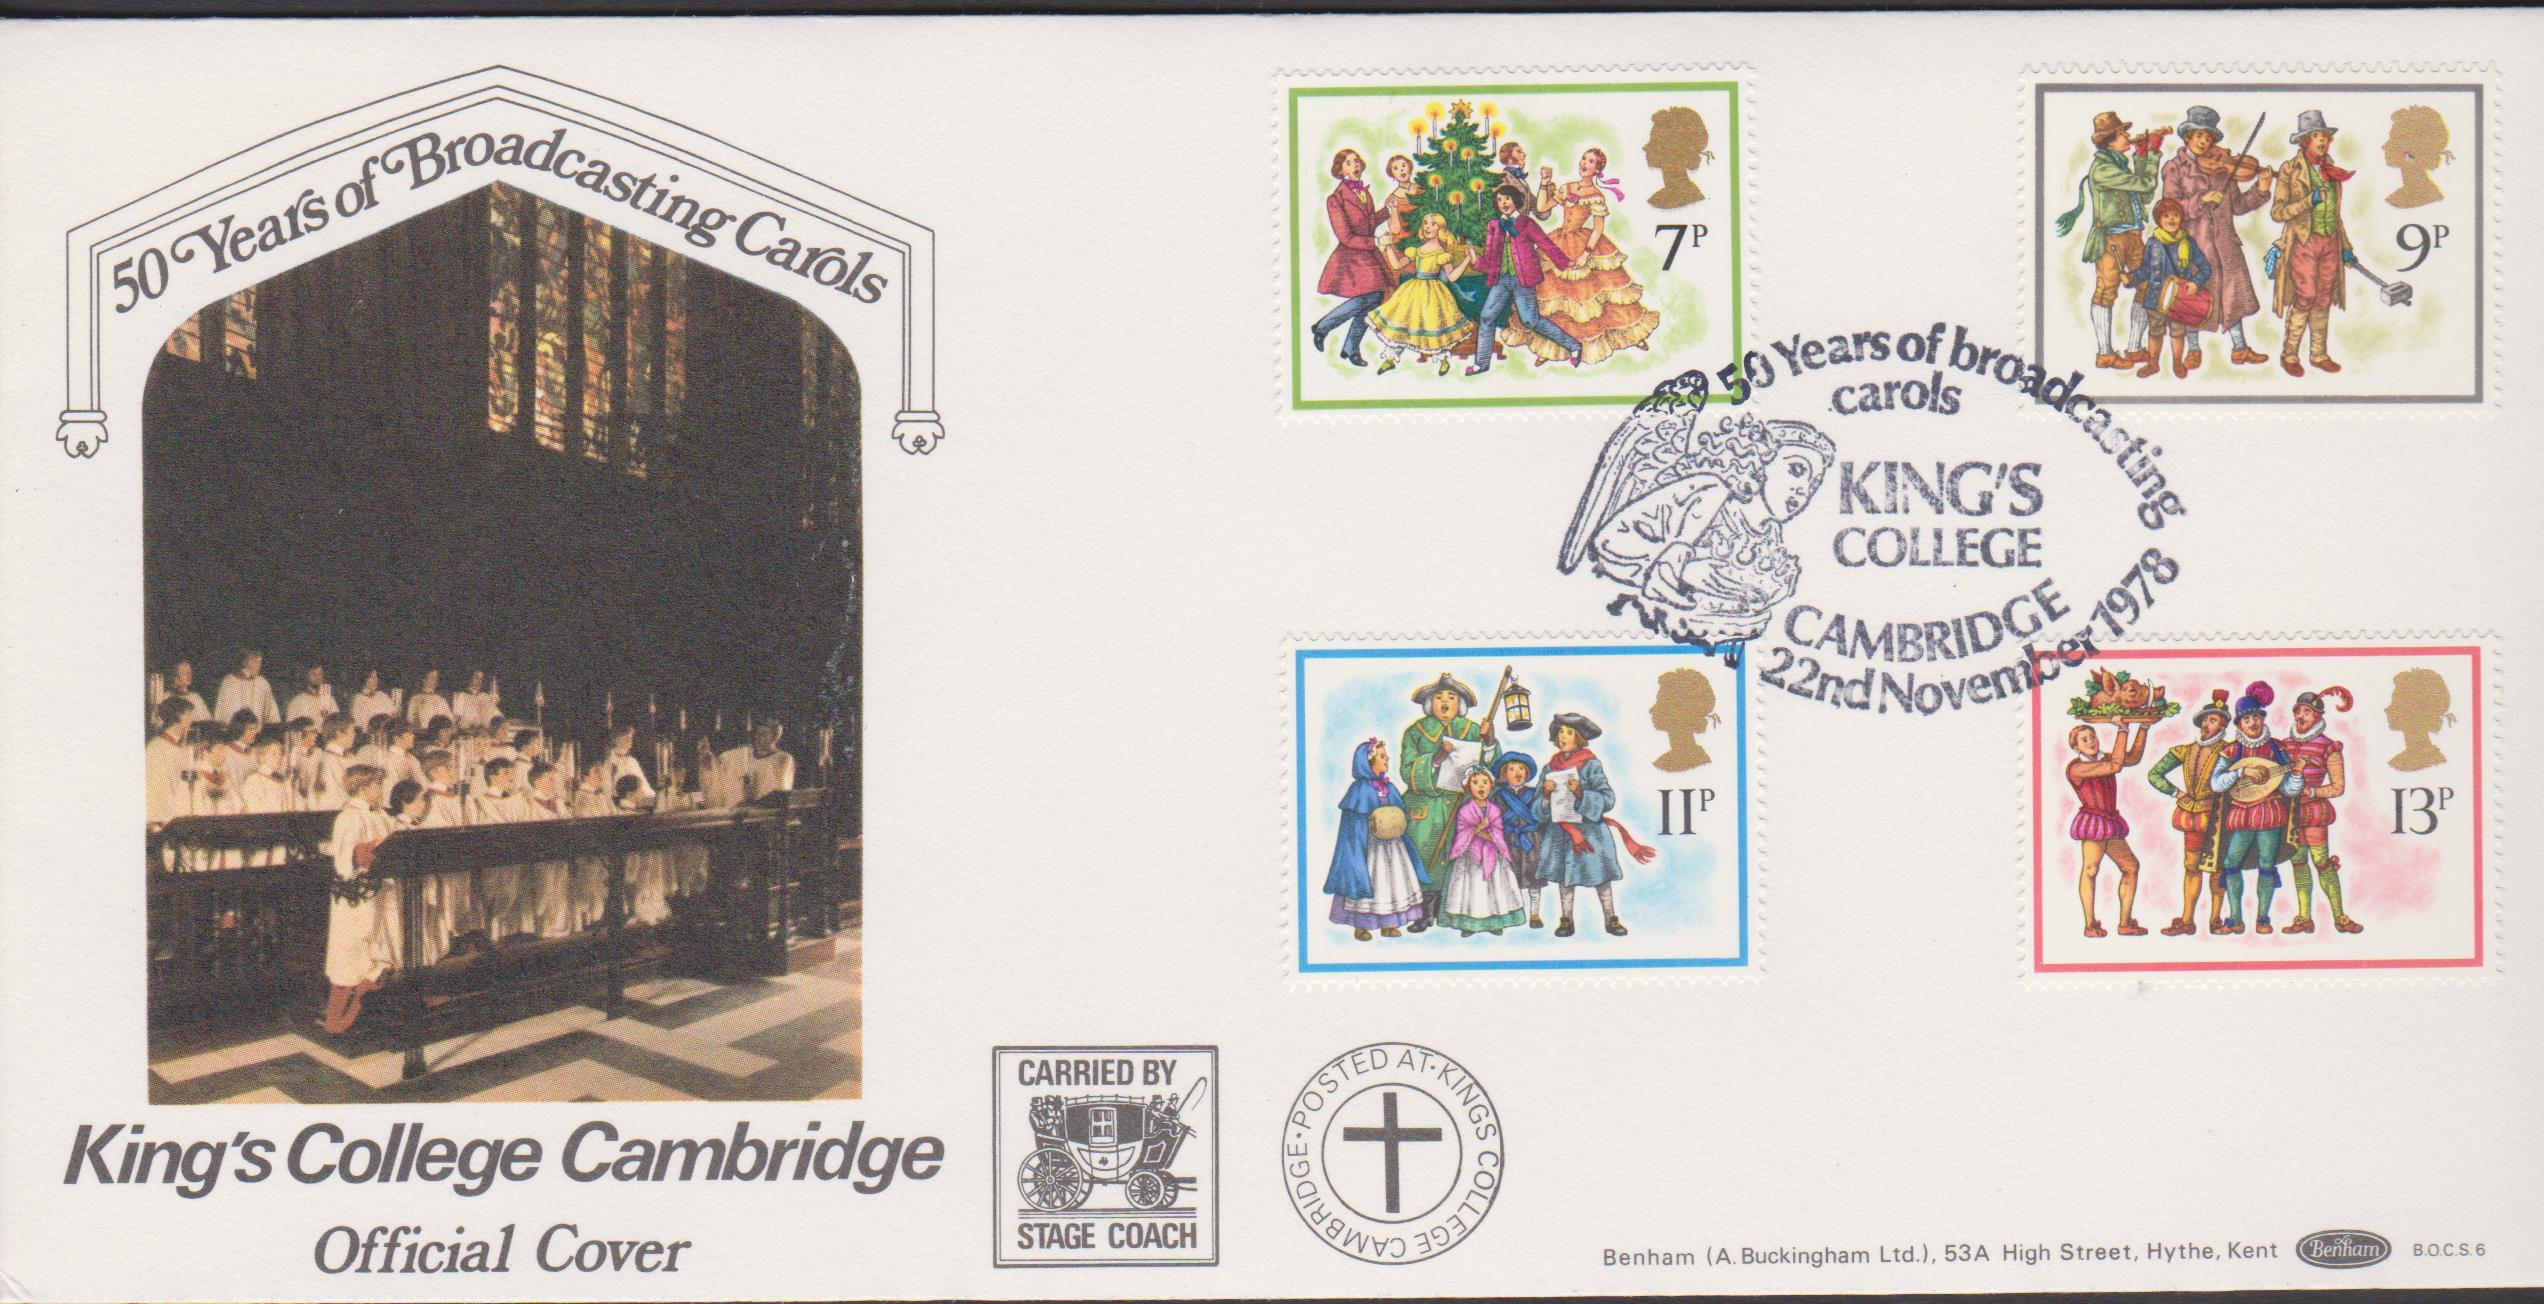 1978 Benham FDC Christmas BOCS 6 Kings College Cambridge Postmark